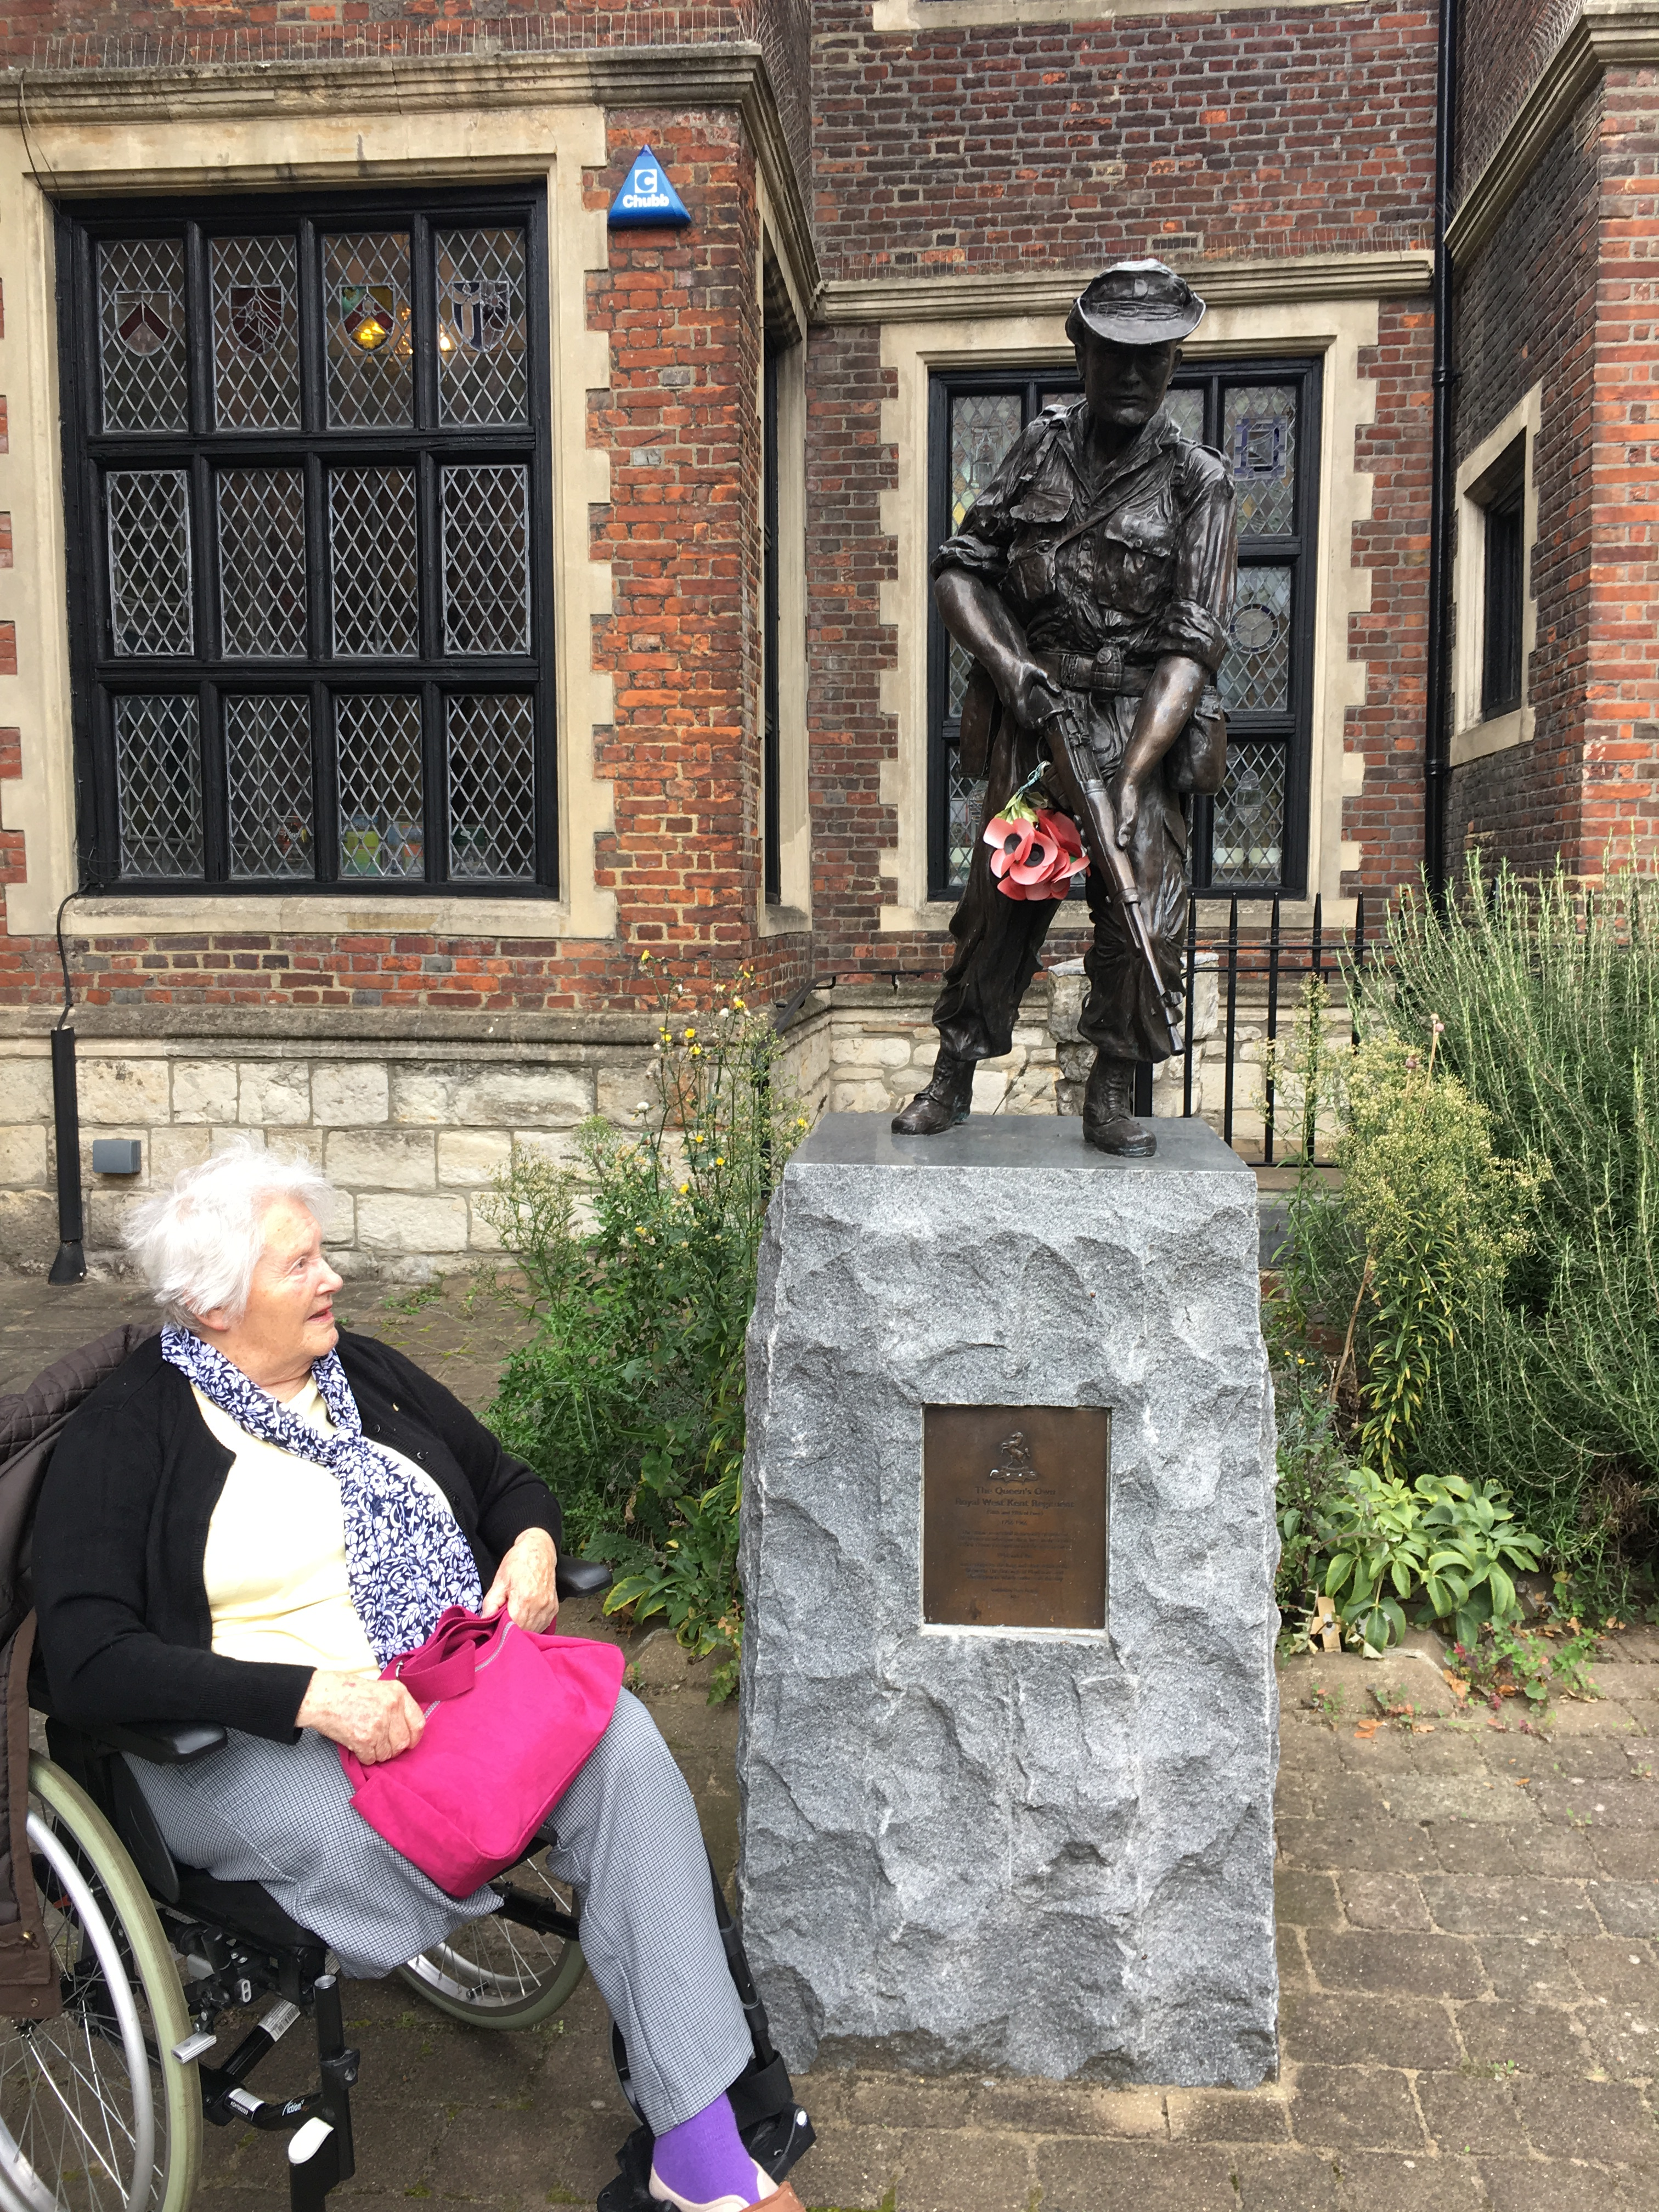 A day out at Maidstone Museum for Ashurst Park Care Home